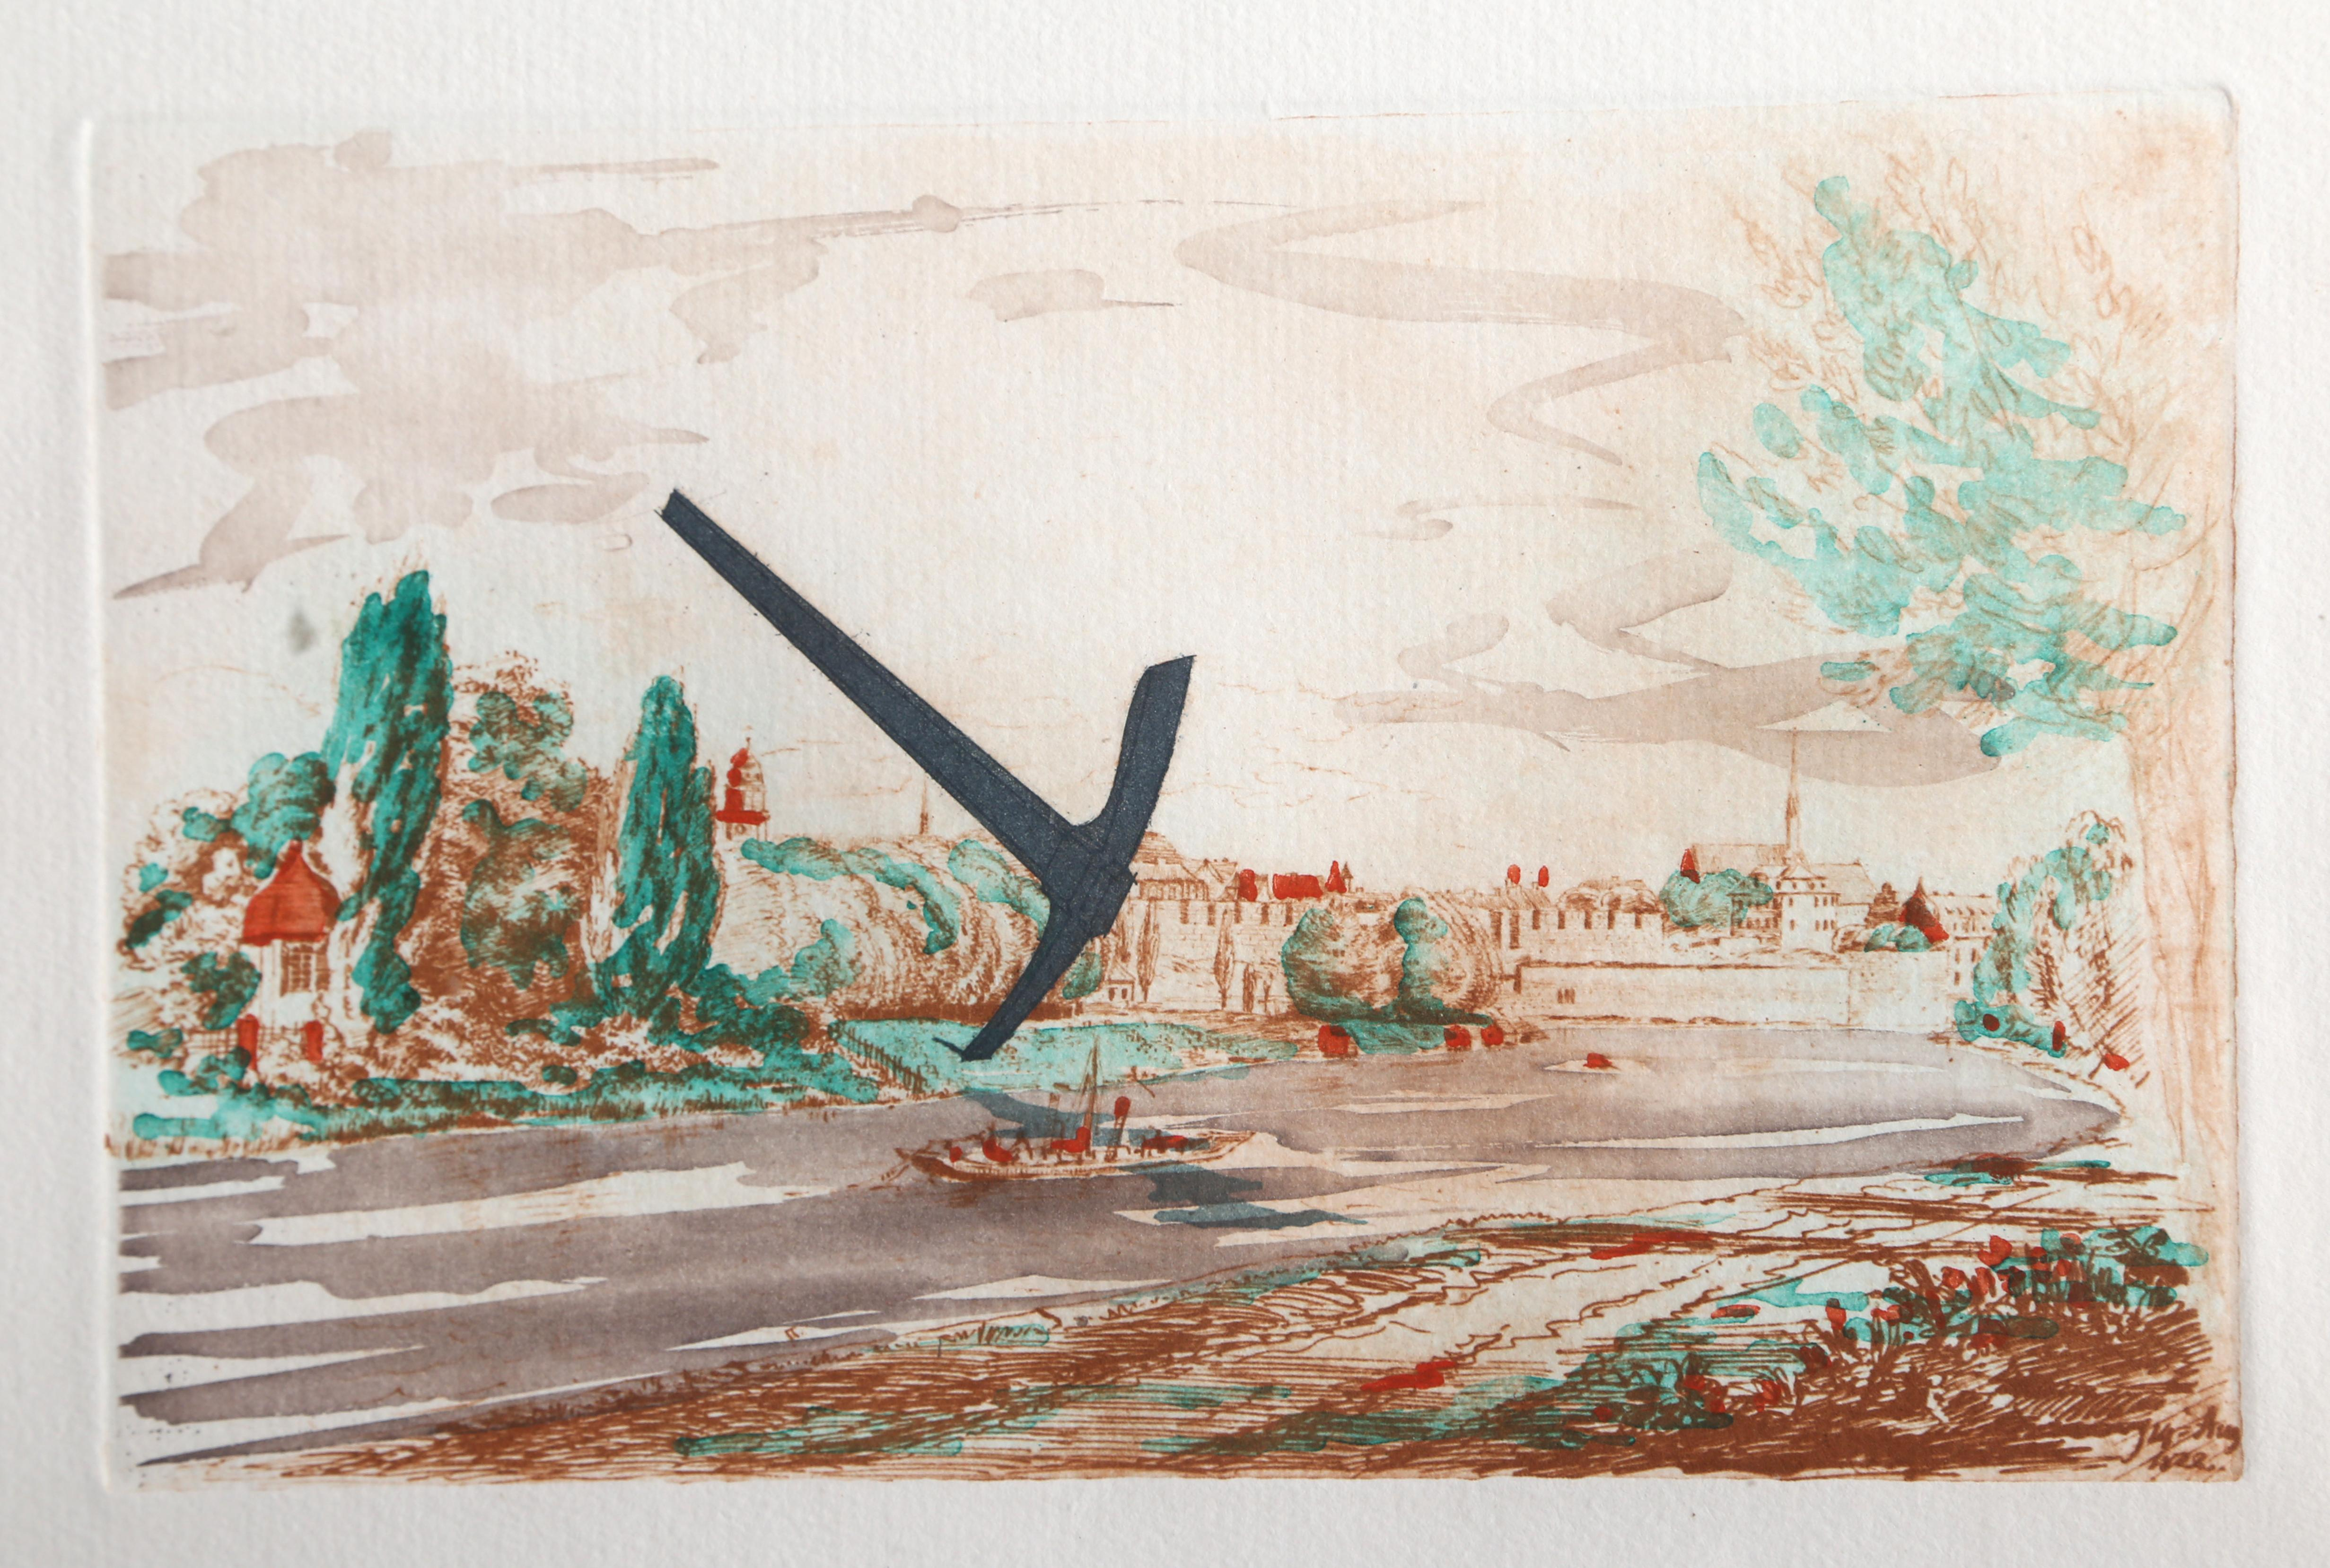 Pick Axe in Landscape, Etching by Claes Oldenburg 1982